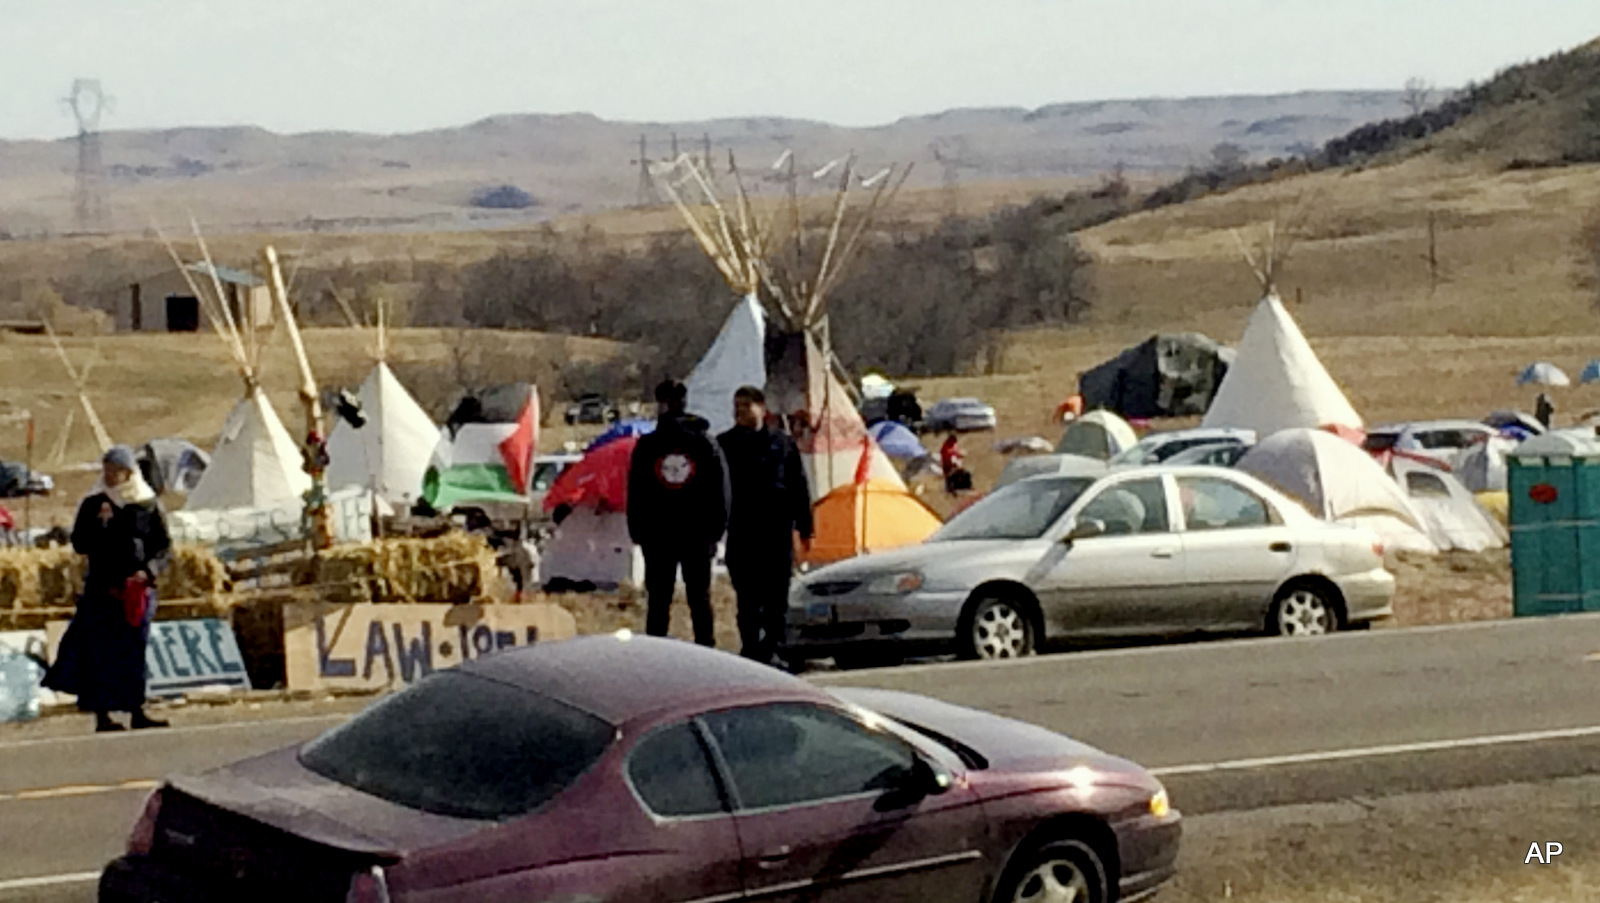 Teepees and numerous tents are set up Monday, Oct. 24, 2016, by Dakota Access oil pipeline protesters in southern North Dakota on property owned by the pipeline company in an attempt to halt construction of the controversial project.